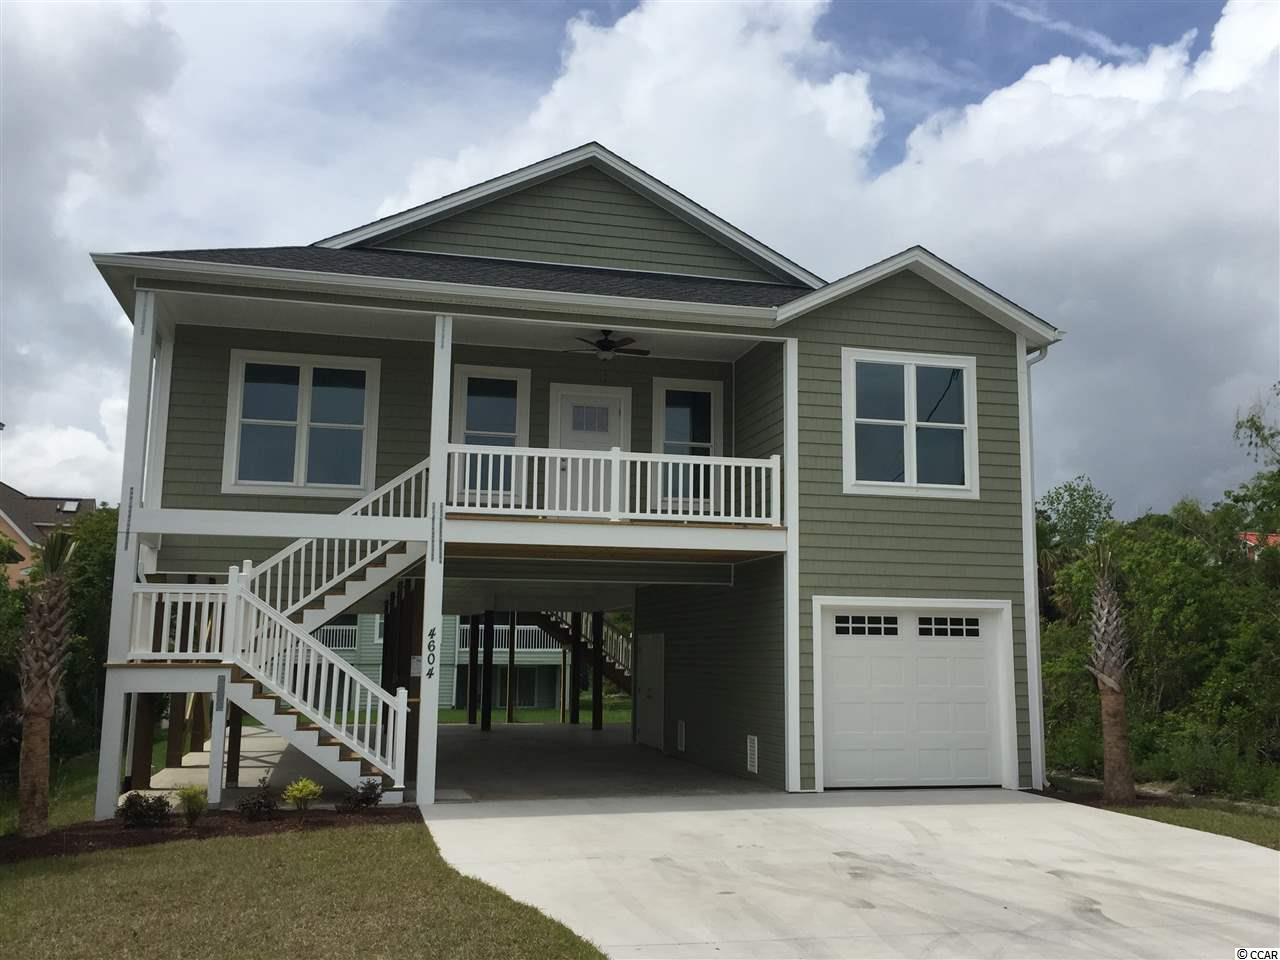 TAKE ADVANTAGE OF THE RARE OPPORTUNITY OF BEING ABLE TO BUY A NEW CONSTRUCTION HOME IN THE DESIRABLE WINDY HILL SECTION OF NORTH MYRTLE BEACH. WALKING /GOLF CART DISTANCE TO BEACH,RESTURANTS AND SHOPPING.